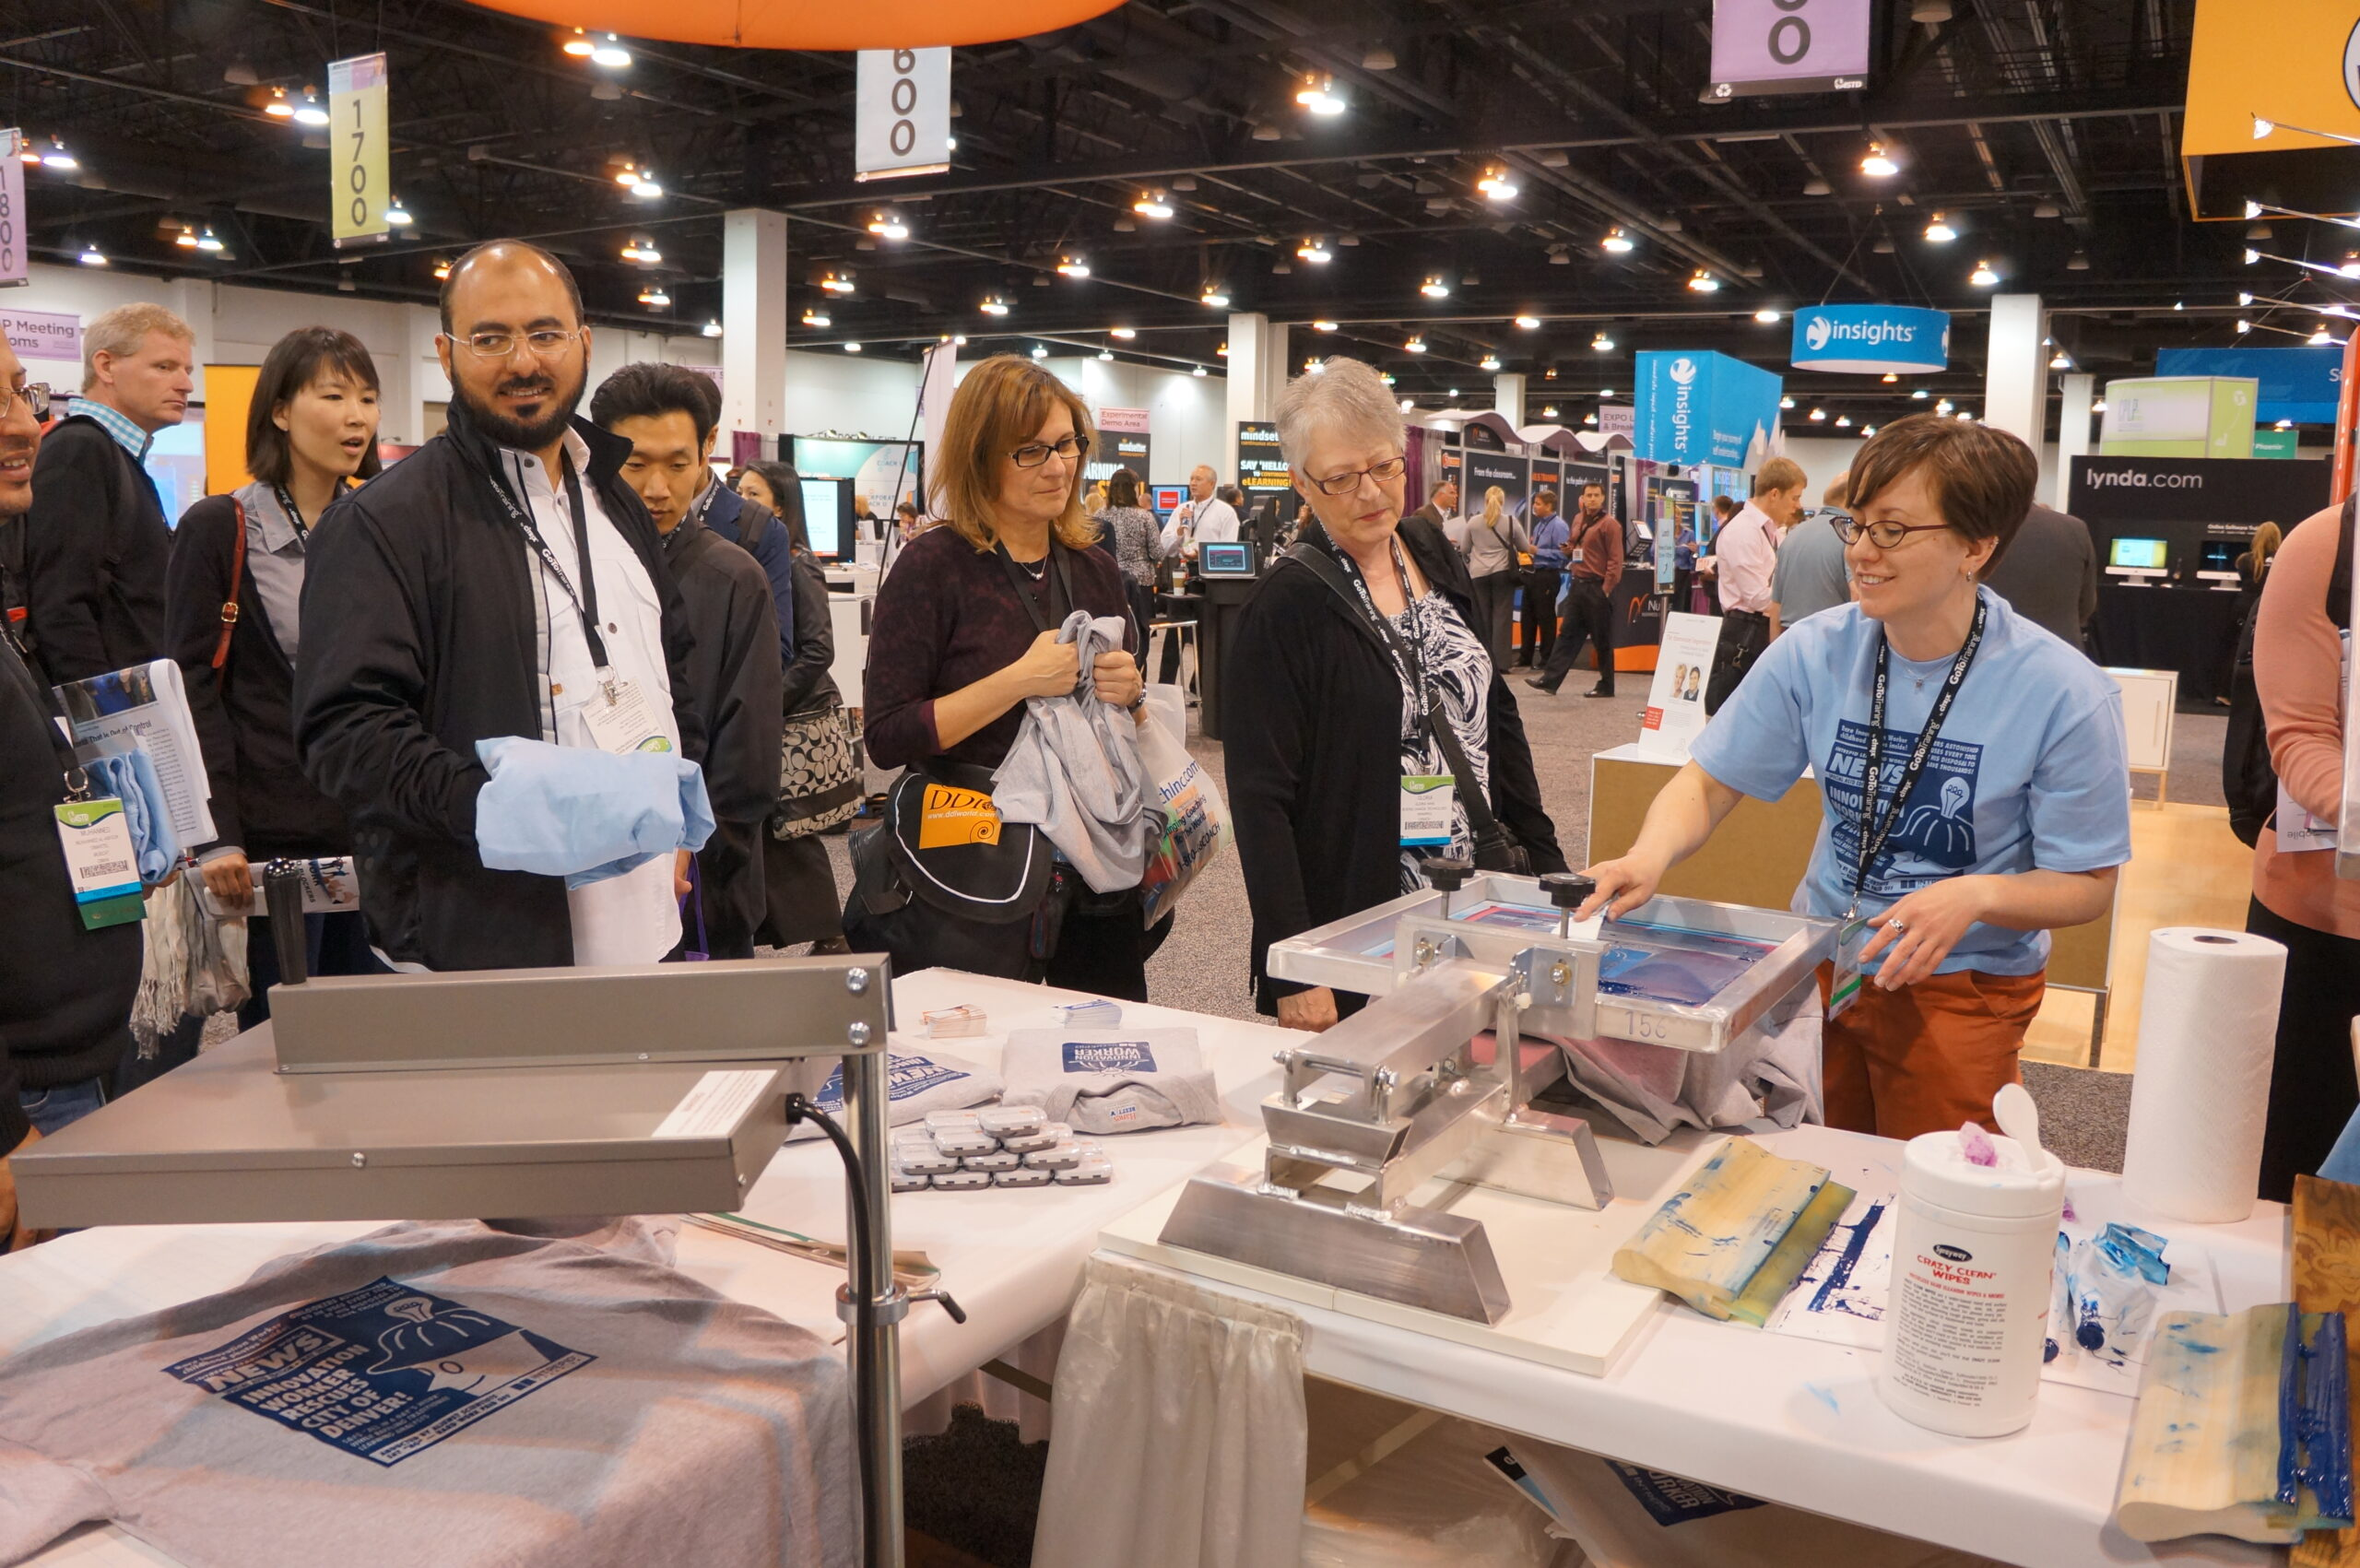 Booth-goers line up to screen print t-shirts at Intrepid Learning booth at ATD conference